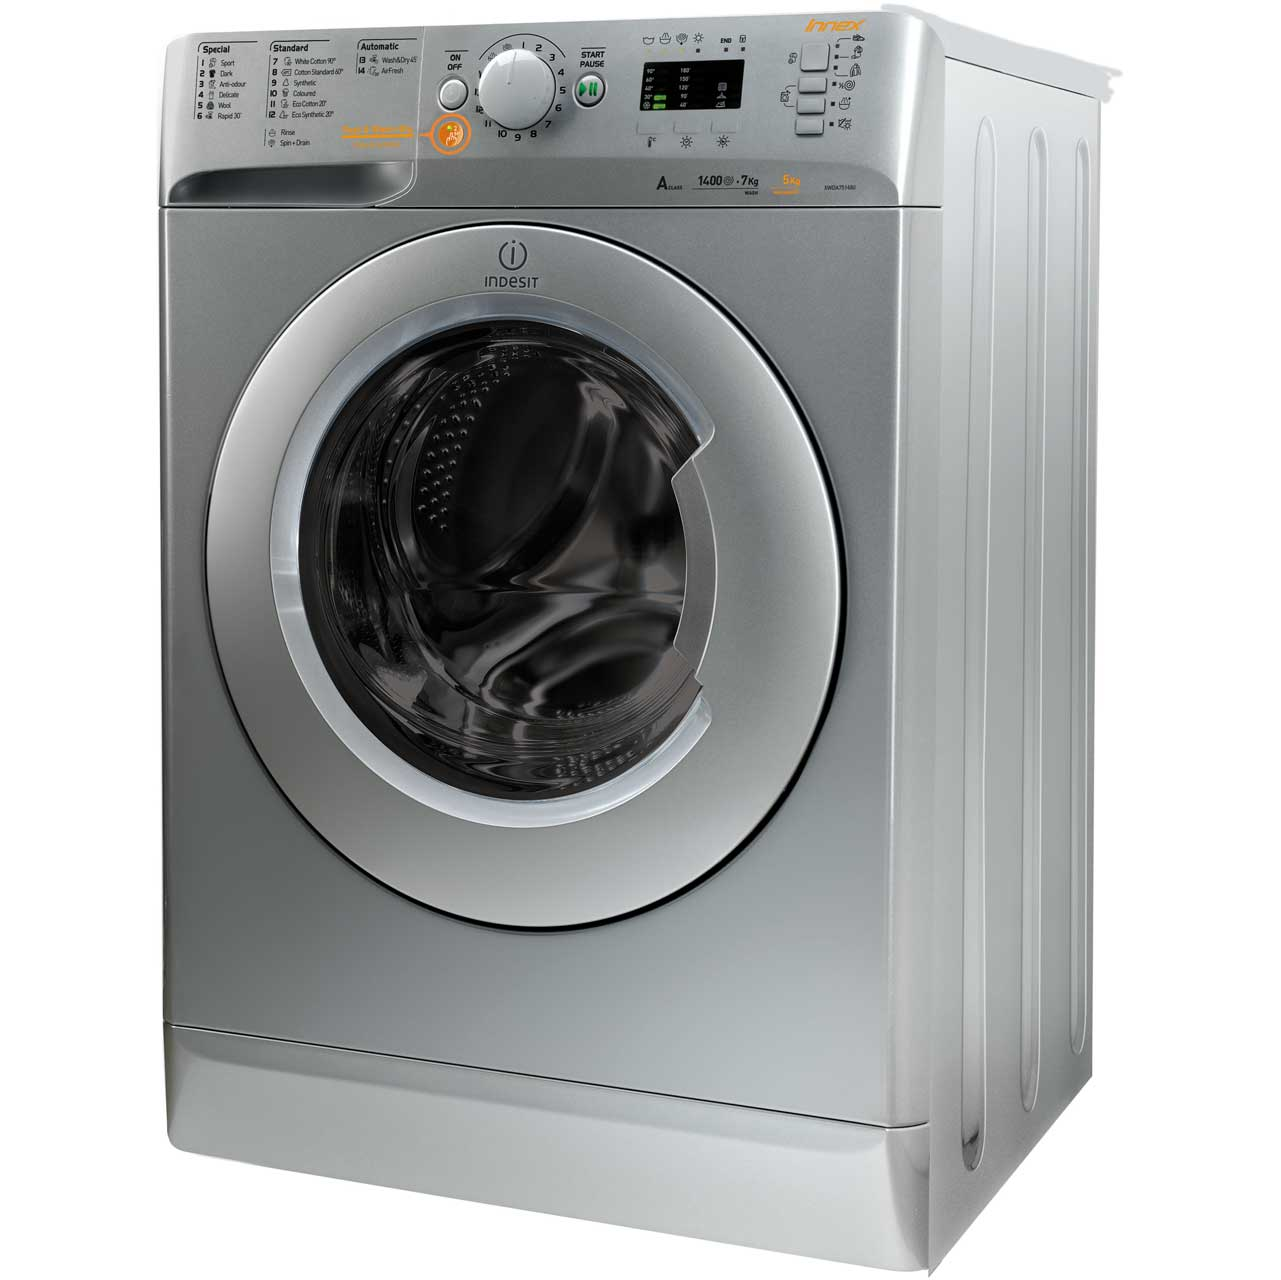 Indesit Innex XWDE751480XS 7Kg / 5Kg Washer Dryer with 1400 rpm - Silver